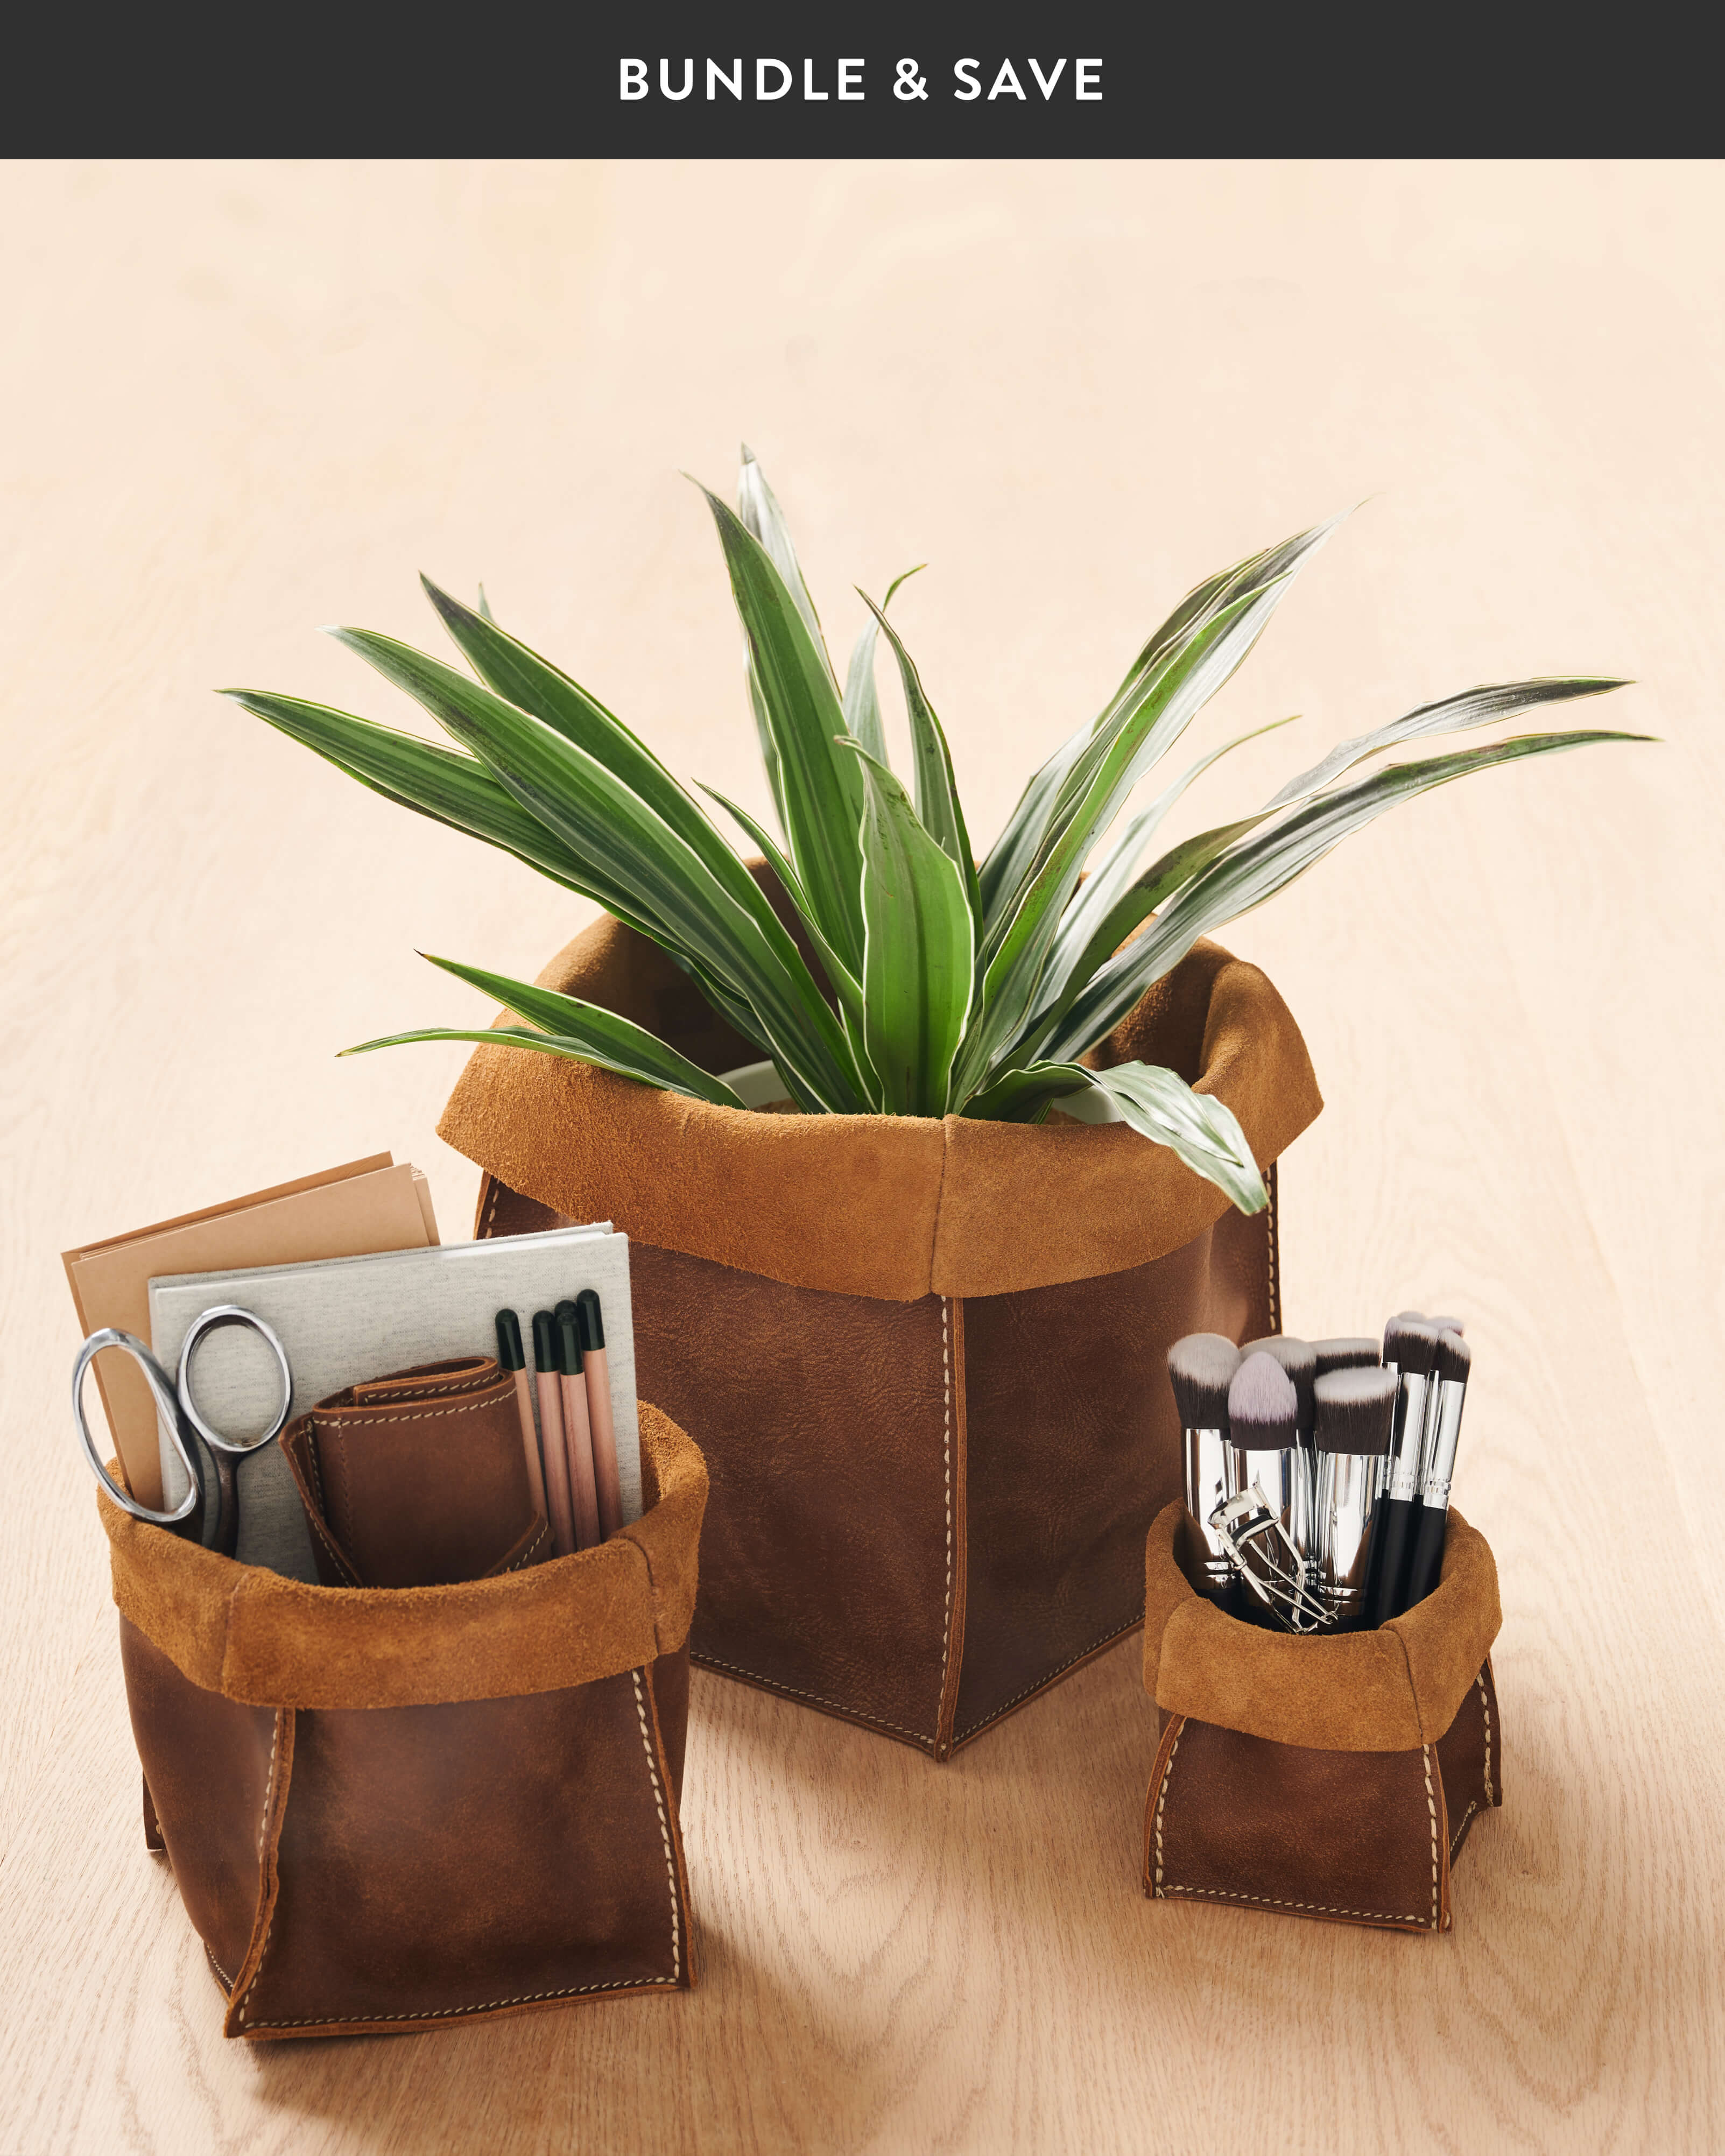 Roots-Leather Leather Accessories-Shop The Look: Home Accessories Bundle -1